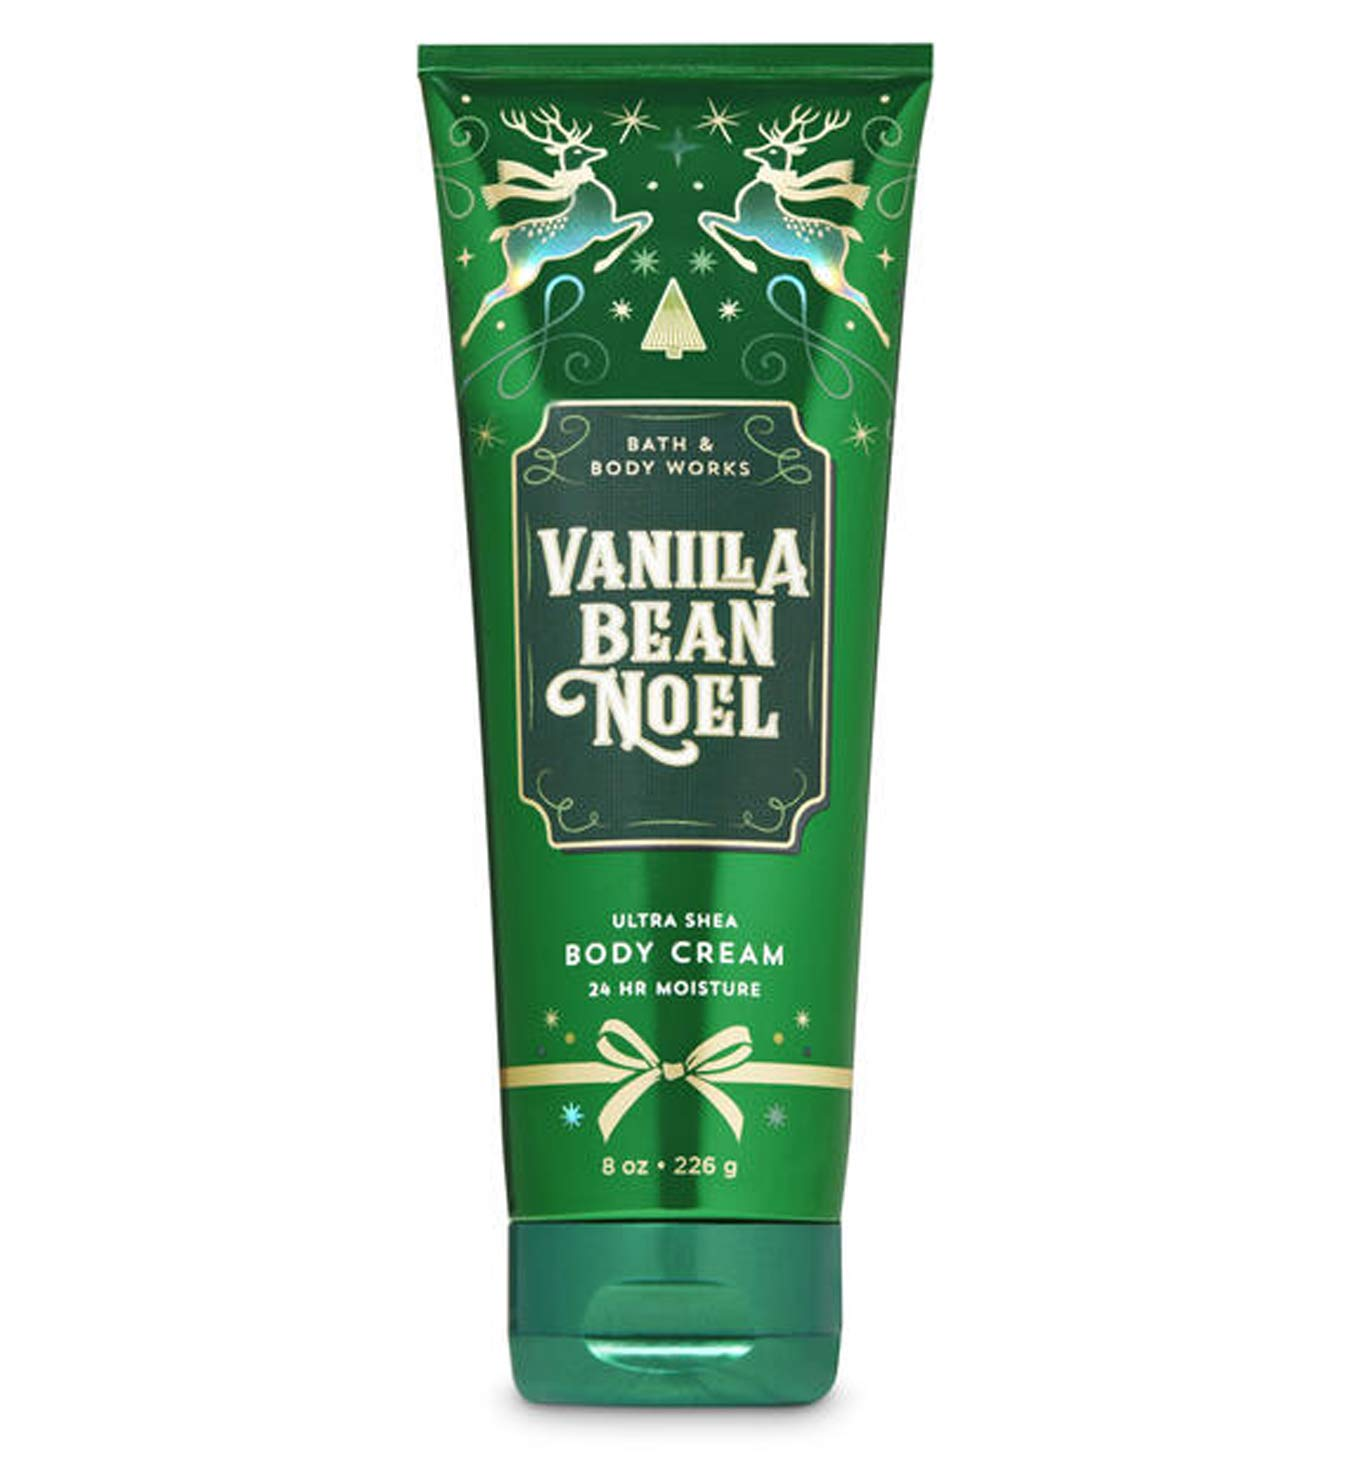 Bath & Body Works Vanilla Bean Noel 2019 Edition Ultra Shea Body Cream 24hr Moisture 8 oz / 226 g : Beauty